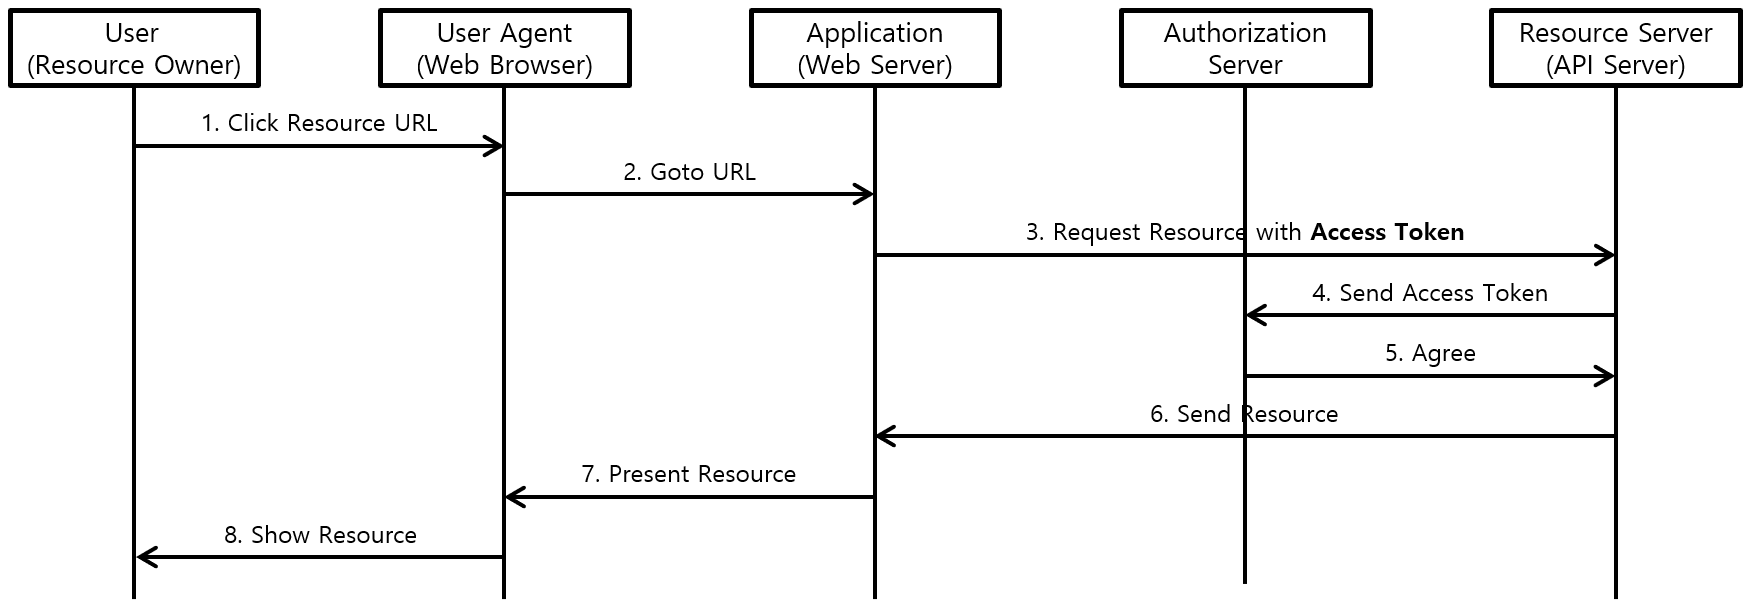 [그림 5] OAuth2.0 Resource 접근